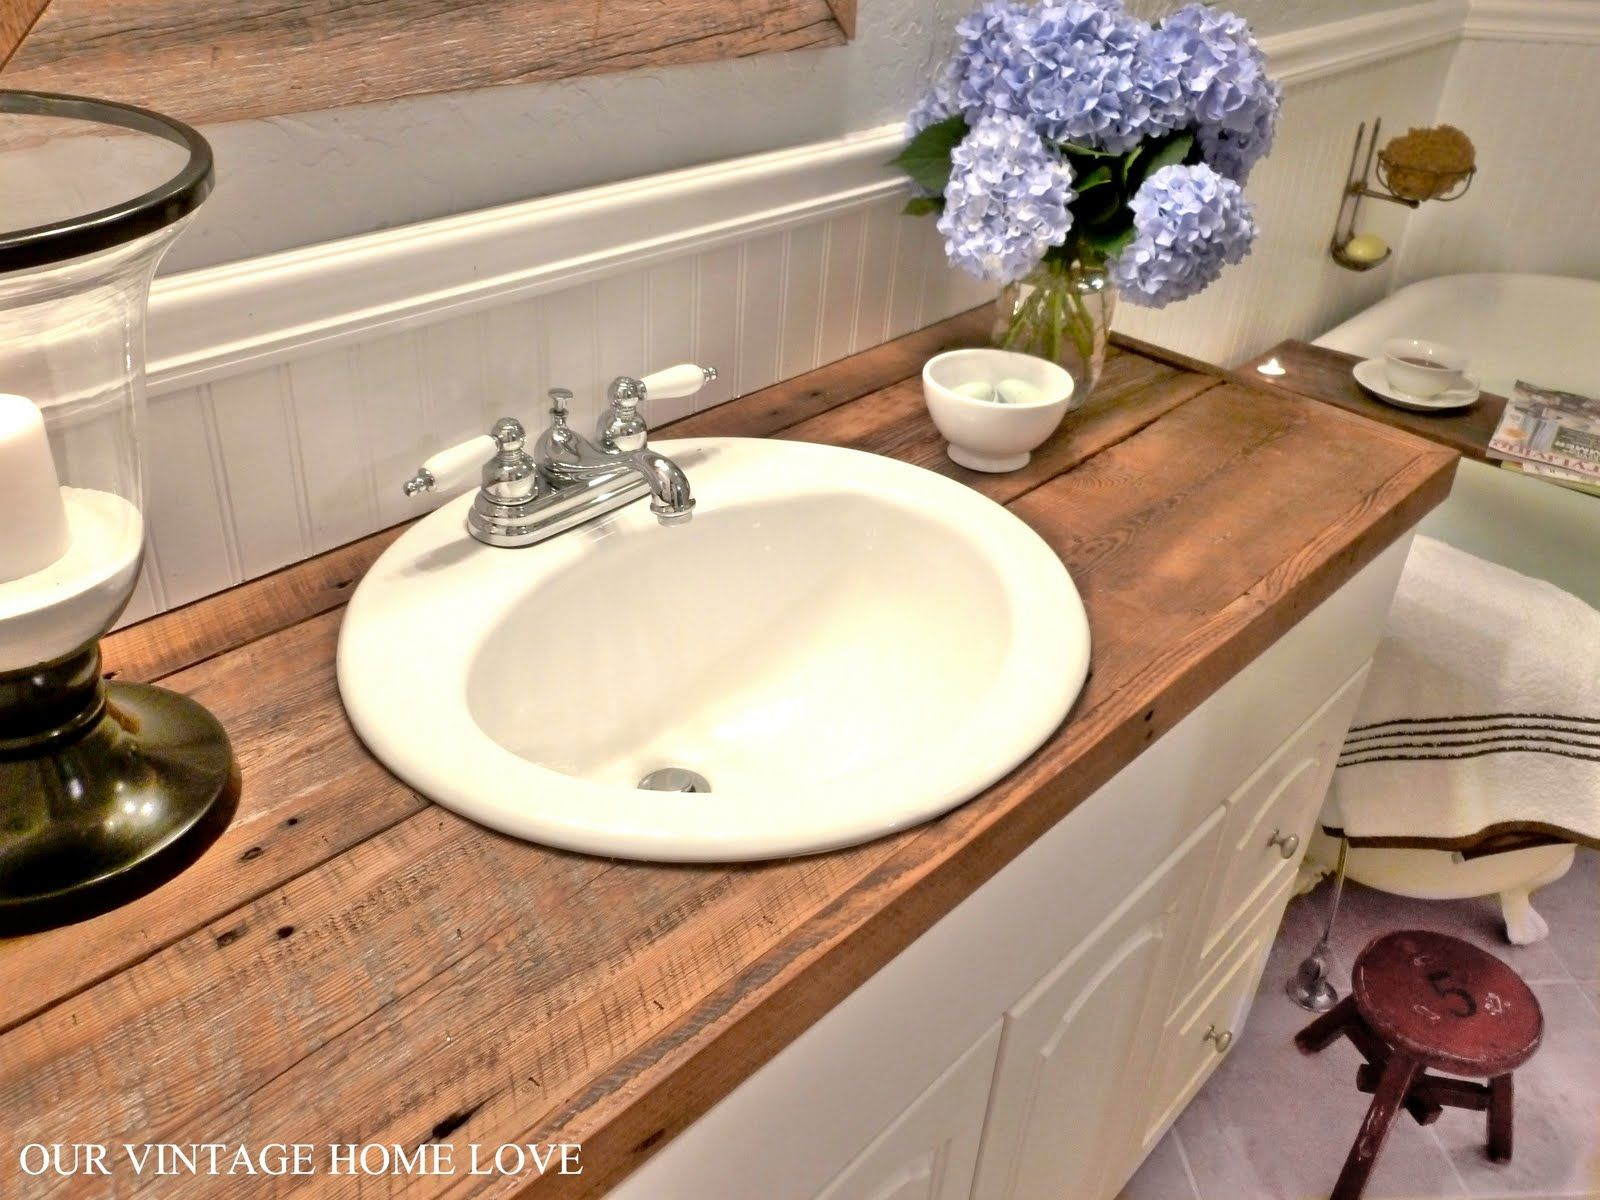 Photo Of I love this reclaimed wood bathroom counter top Where could I get my hands on some wood like this and a tutorial of how to get the job done